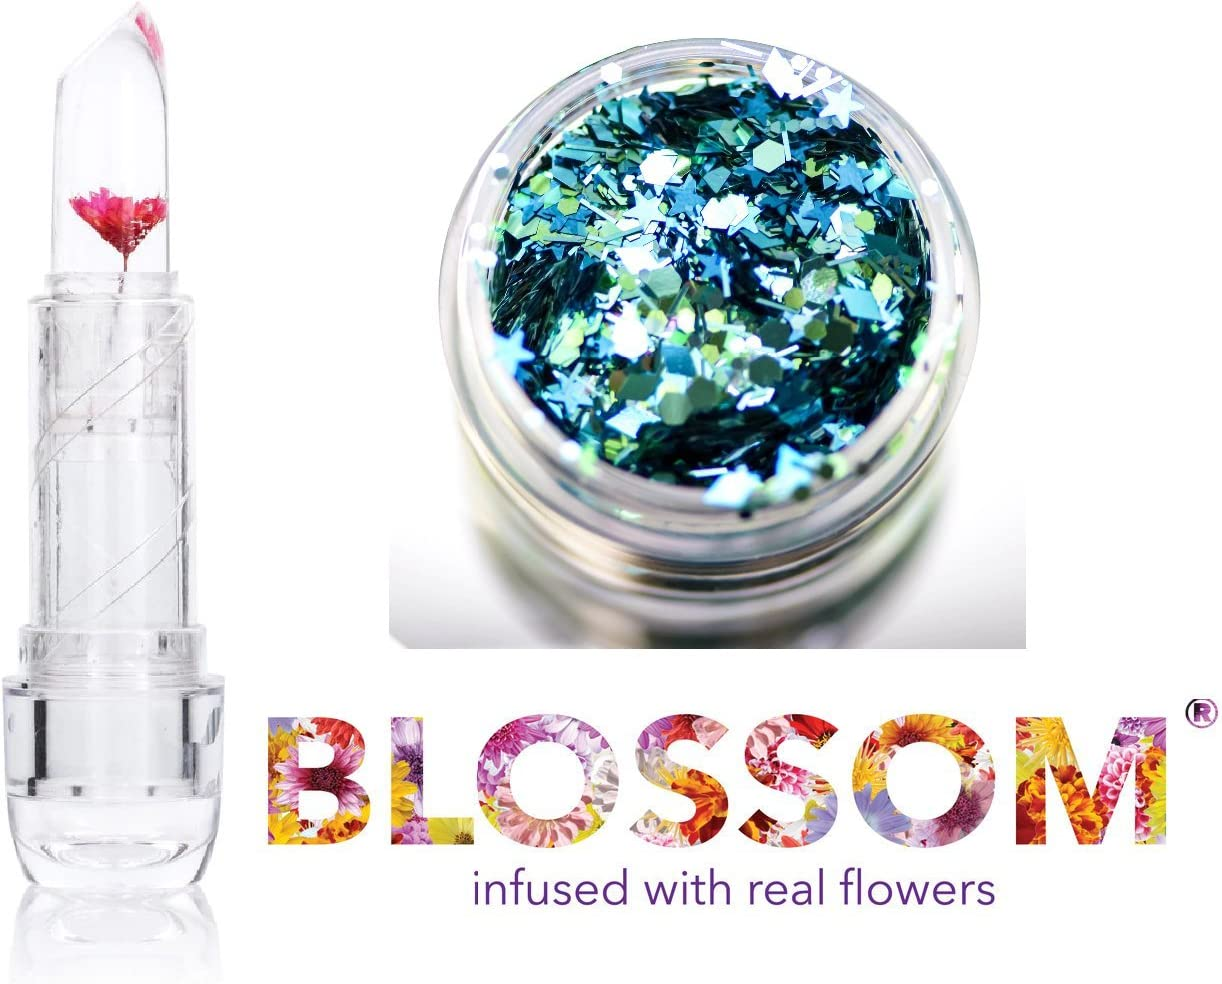 Blossom Crystal Lip Balm, Infused with Real Flowers (with Bonus Skin/Hair Glitter) (Red Flower)